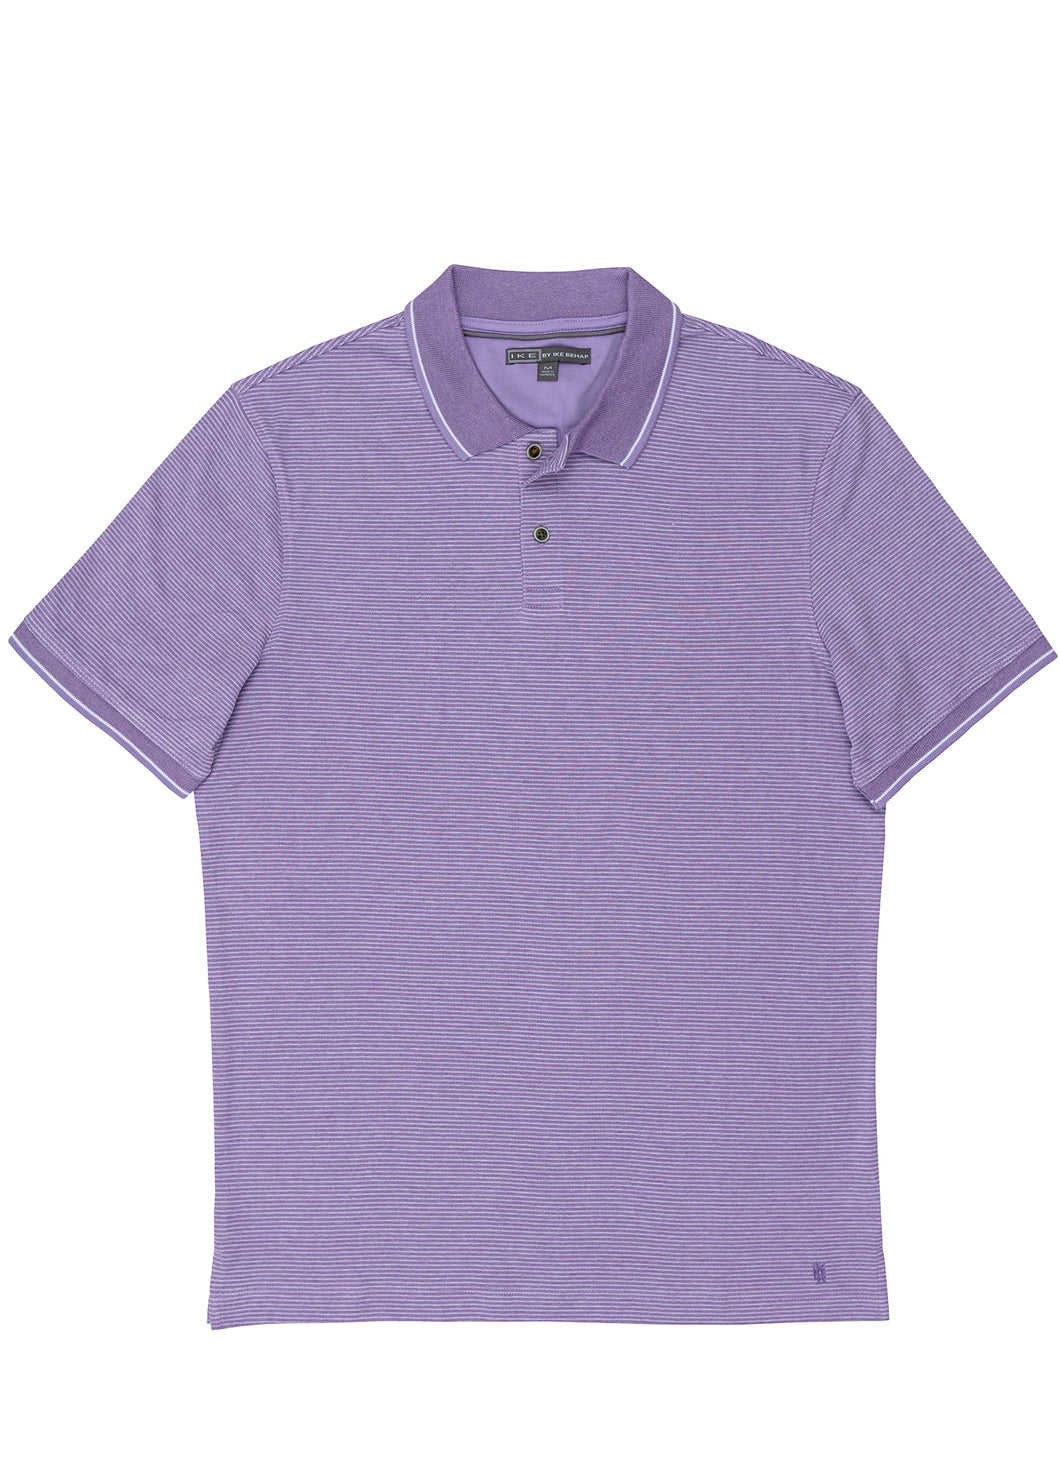 Violet Marbled Fineline Stripe Polo Knit